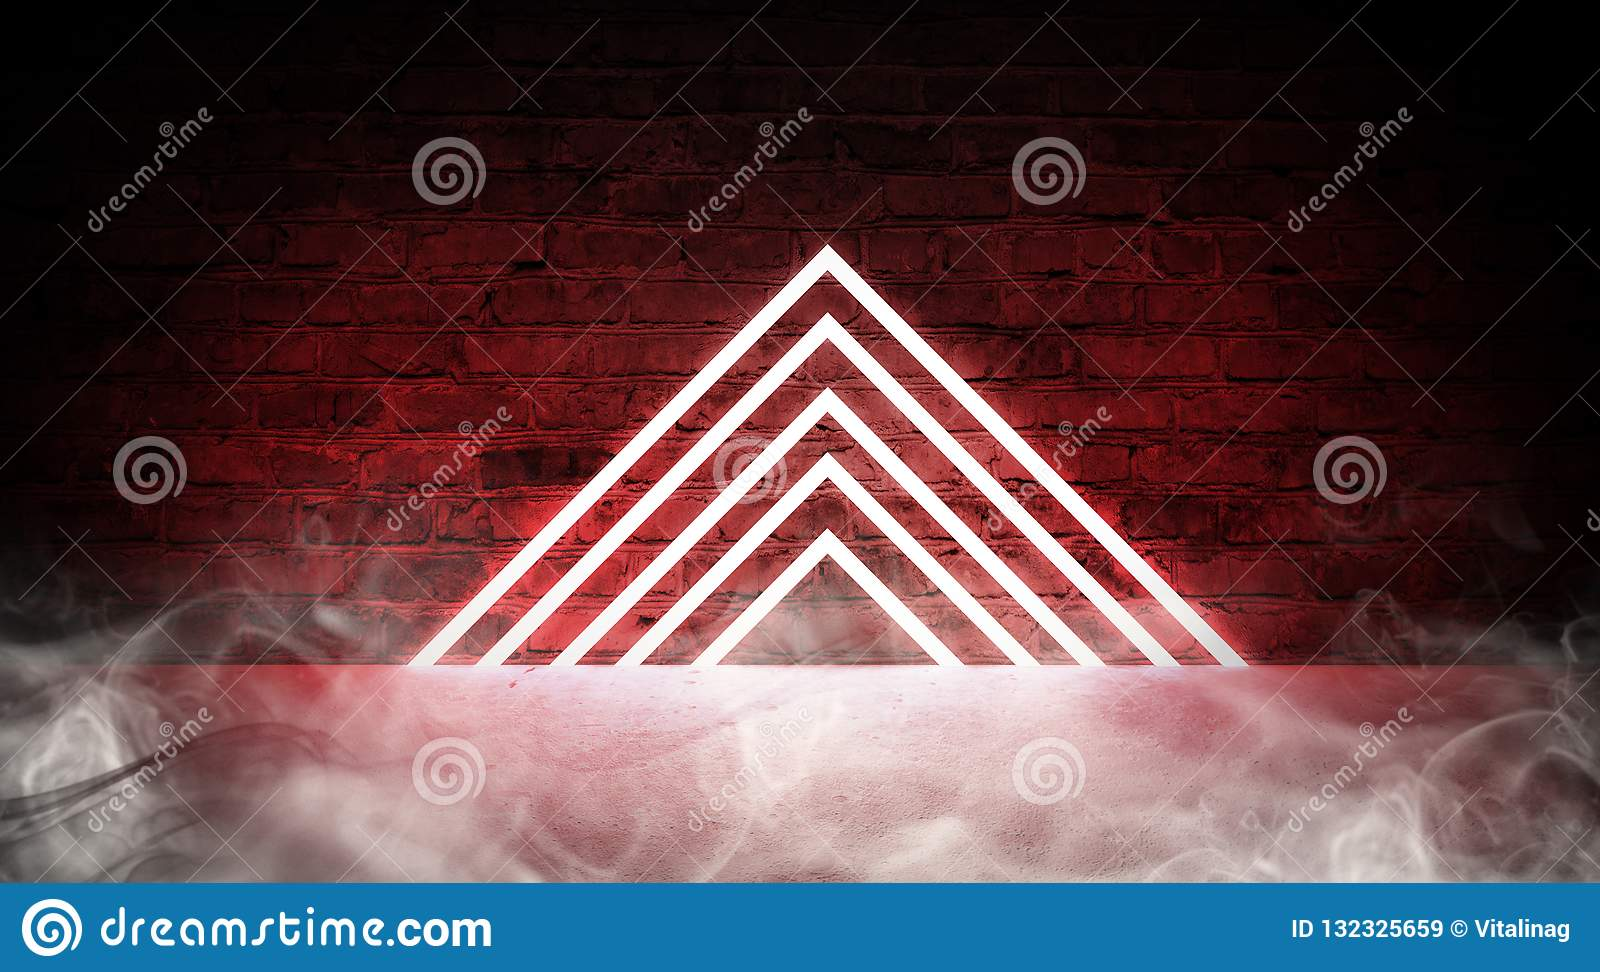 3d render, abstract fashion background, blue pink neon triangular portal, glowing lines